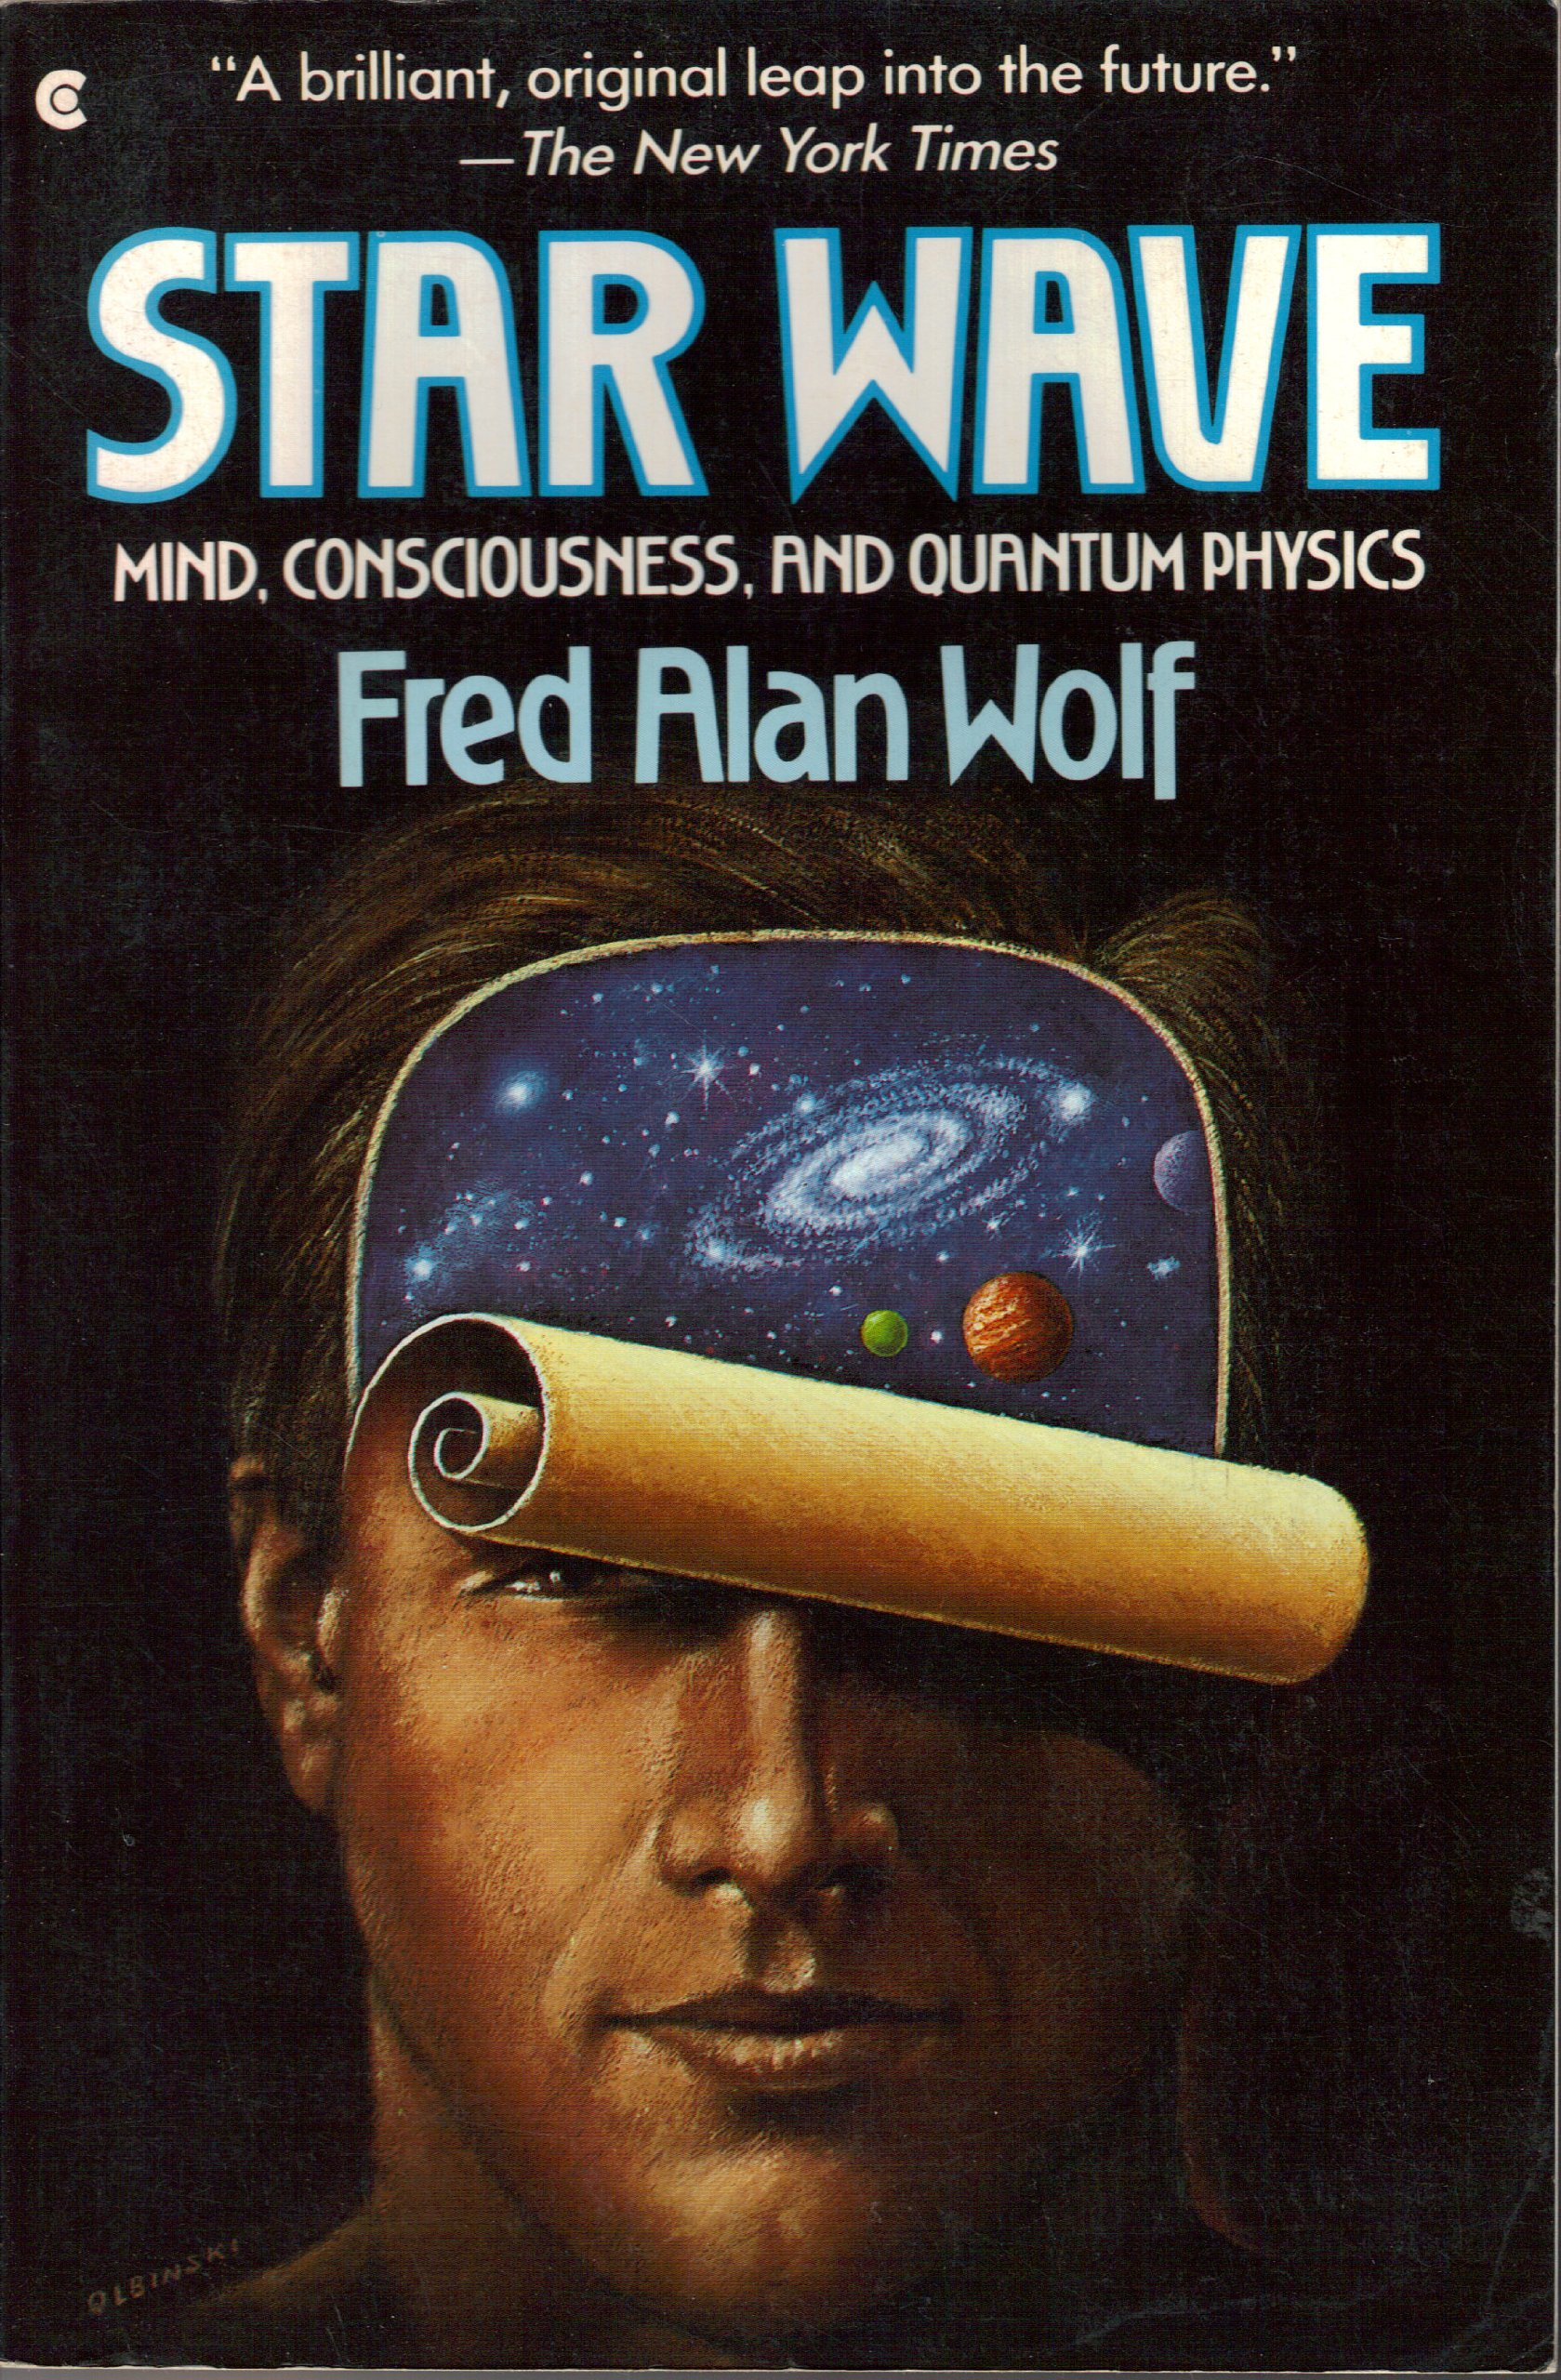 star wave mind consciousness and quantum physics fred alan wolf